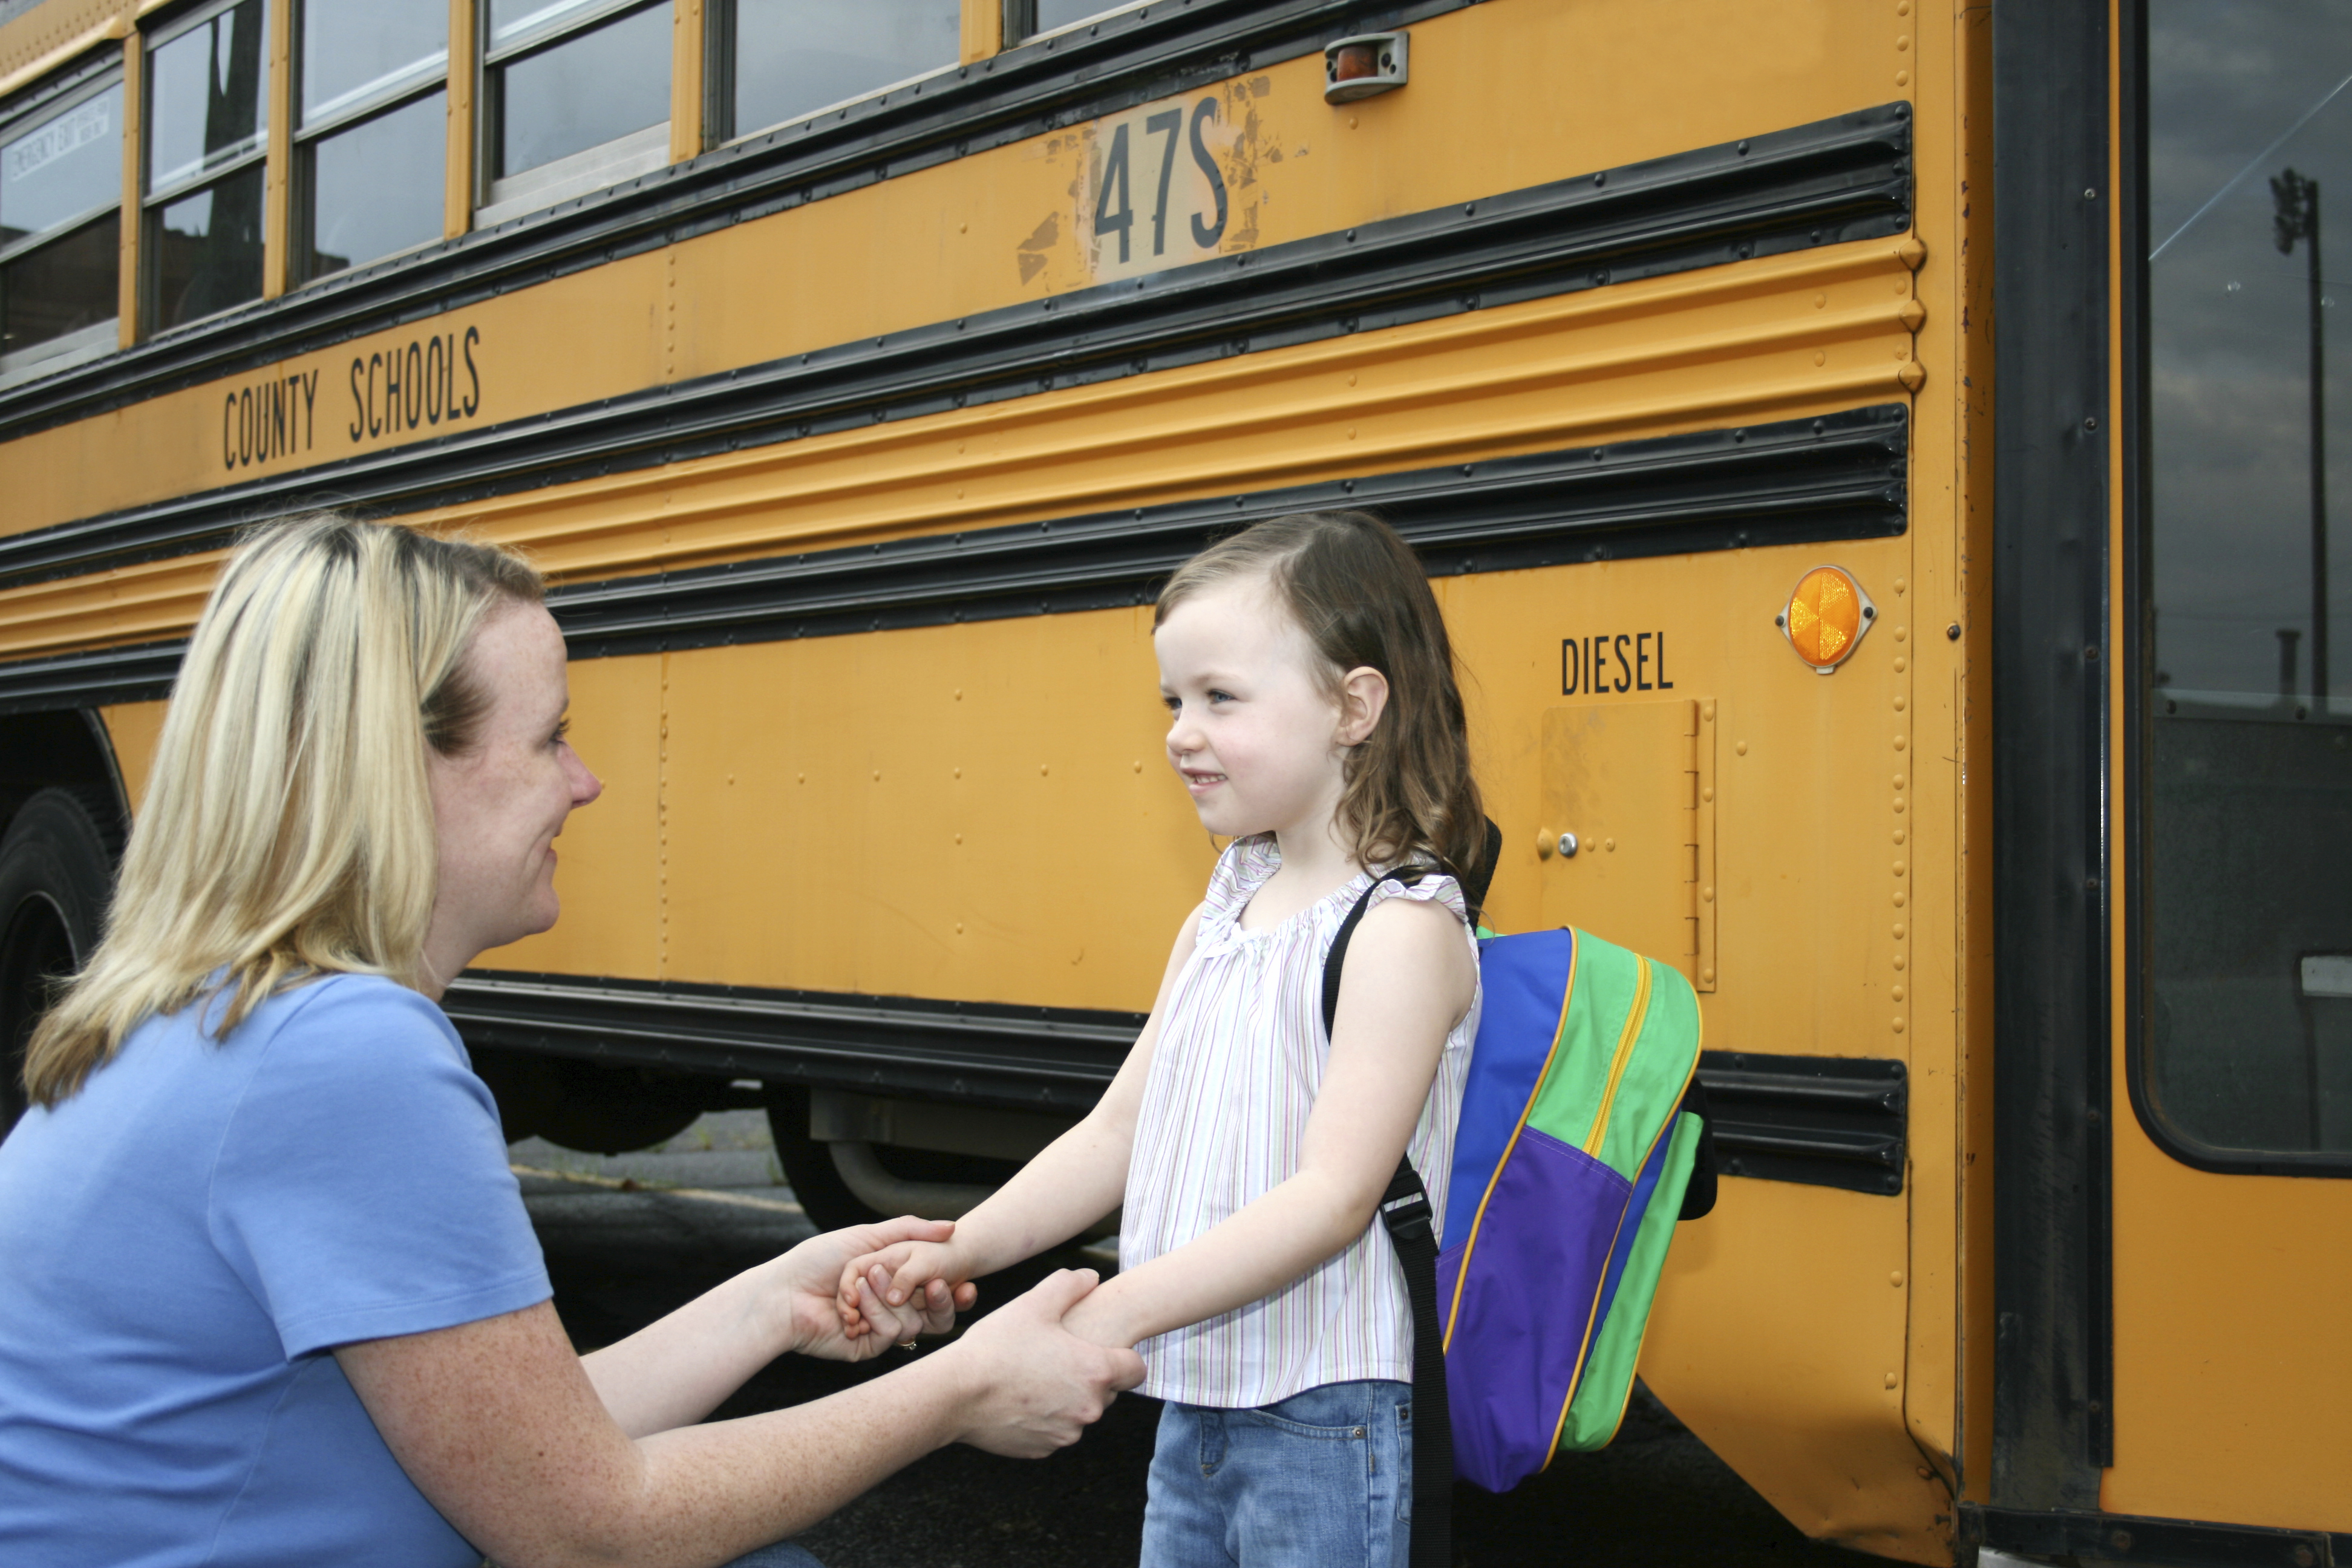 A mother and child at a school bus